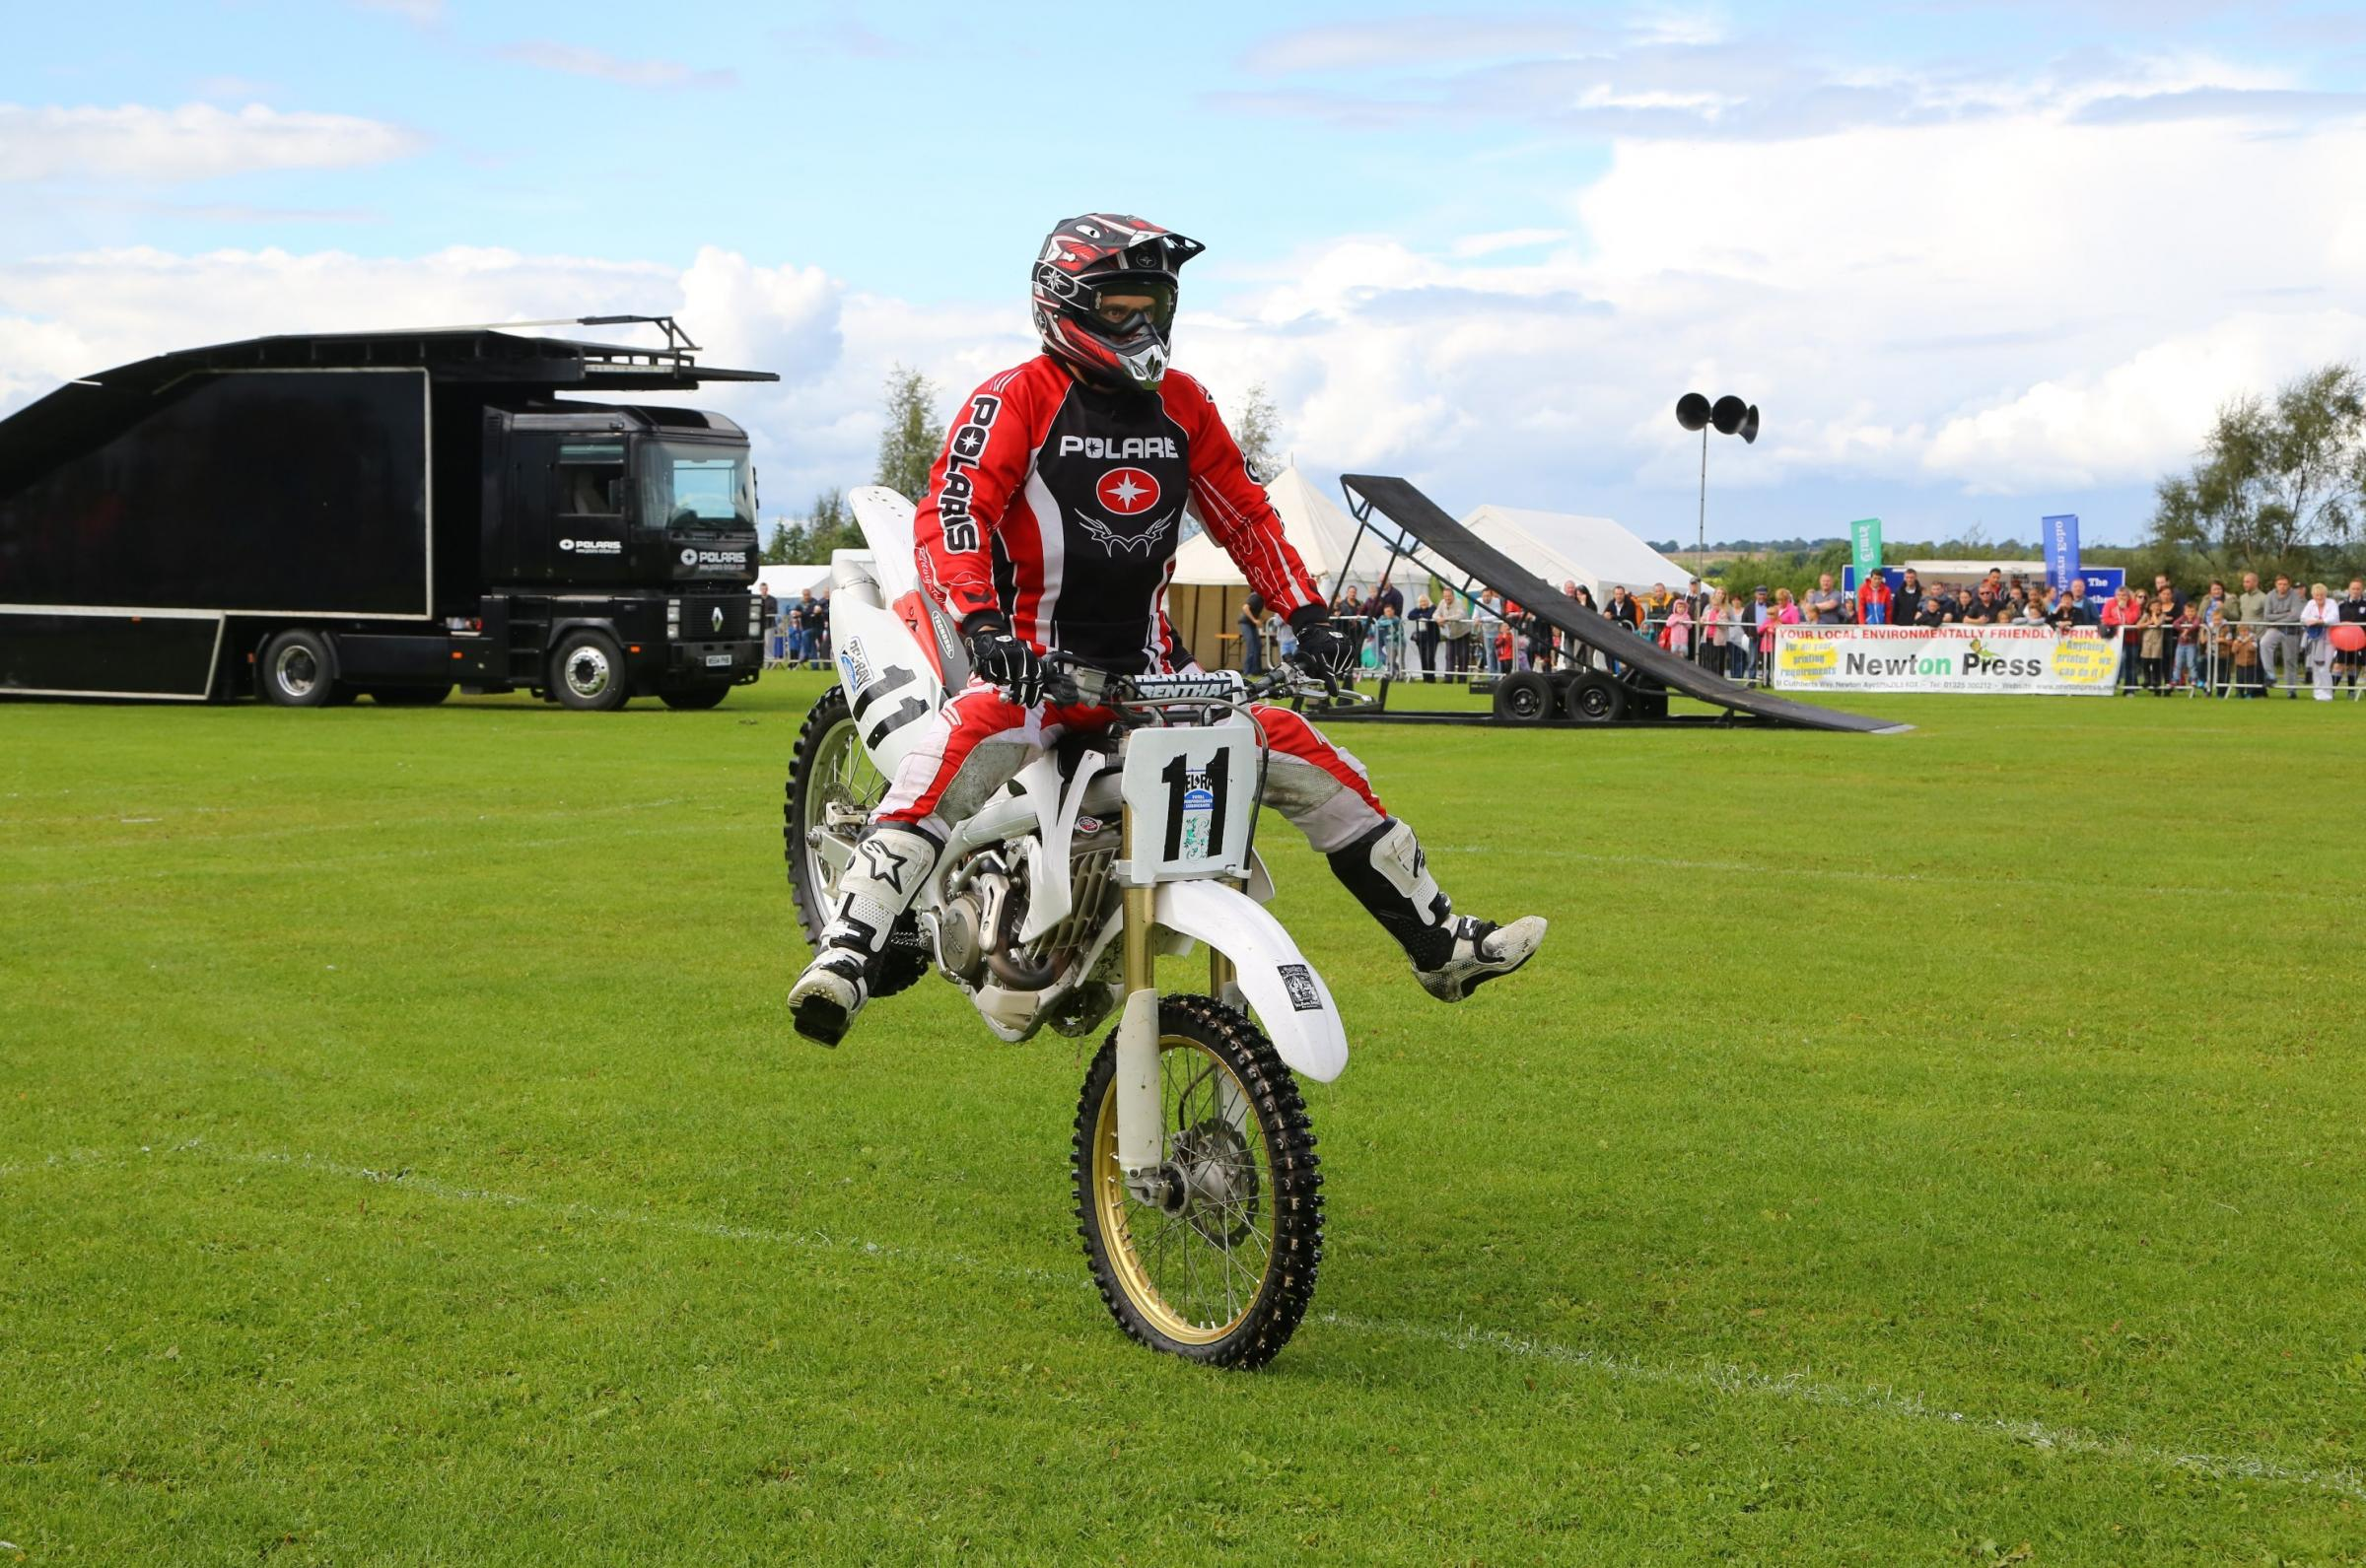 Visitors flock to enjoy the last annual Great Aycliffe Show